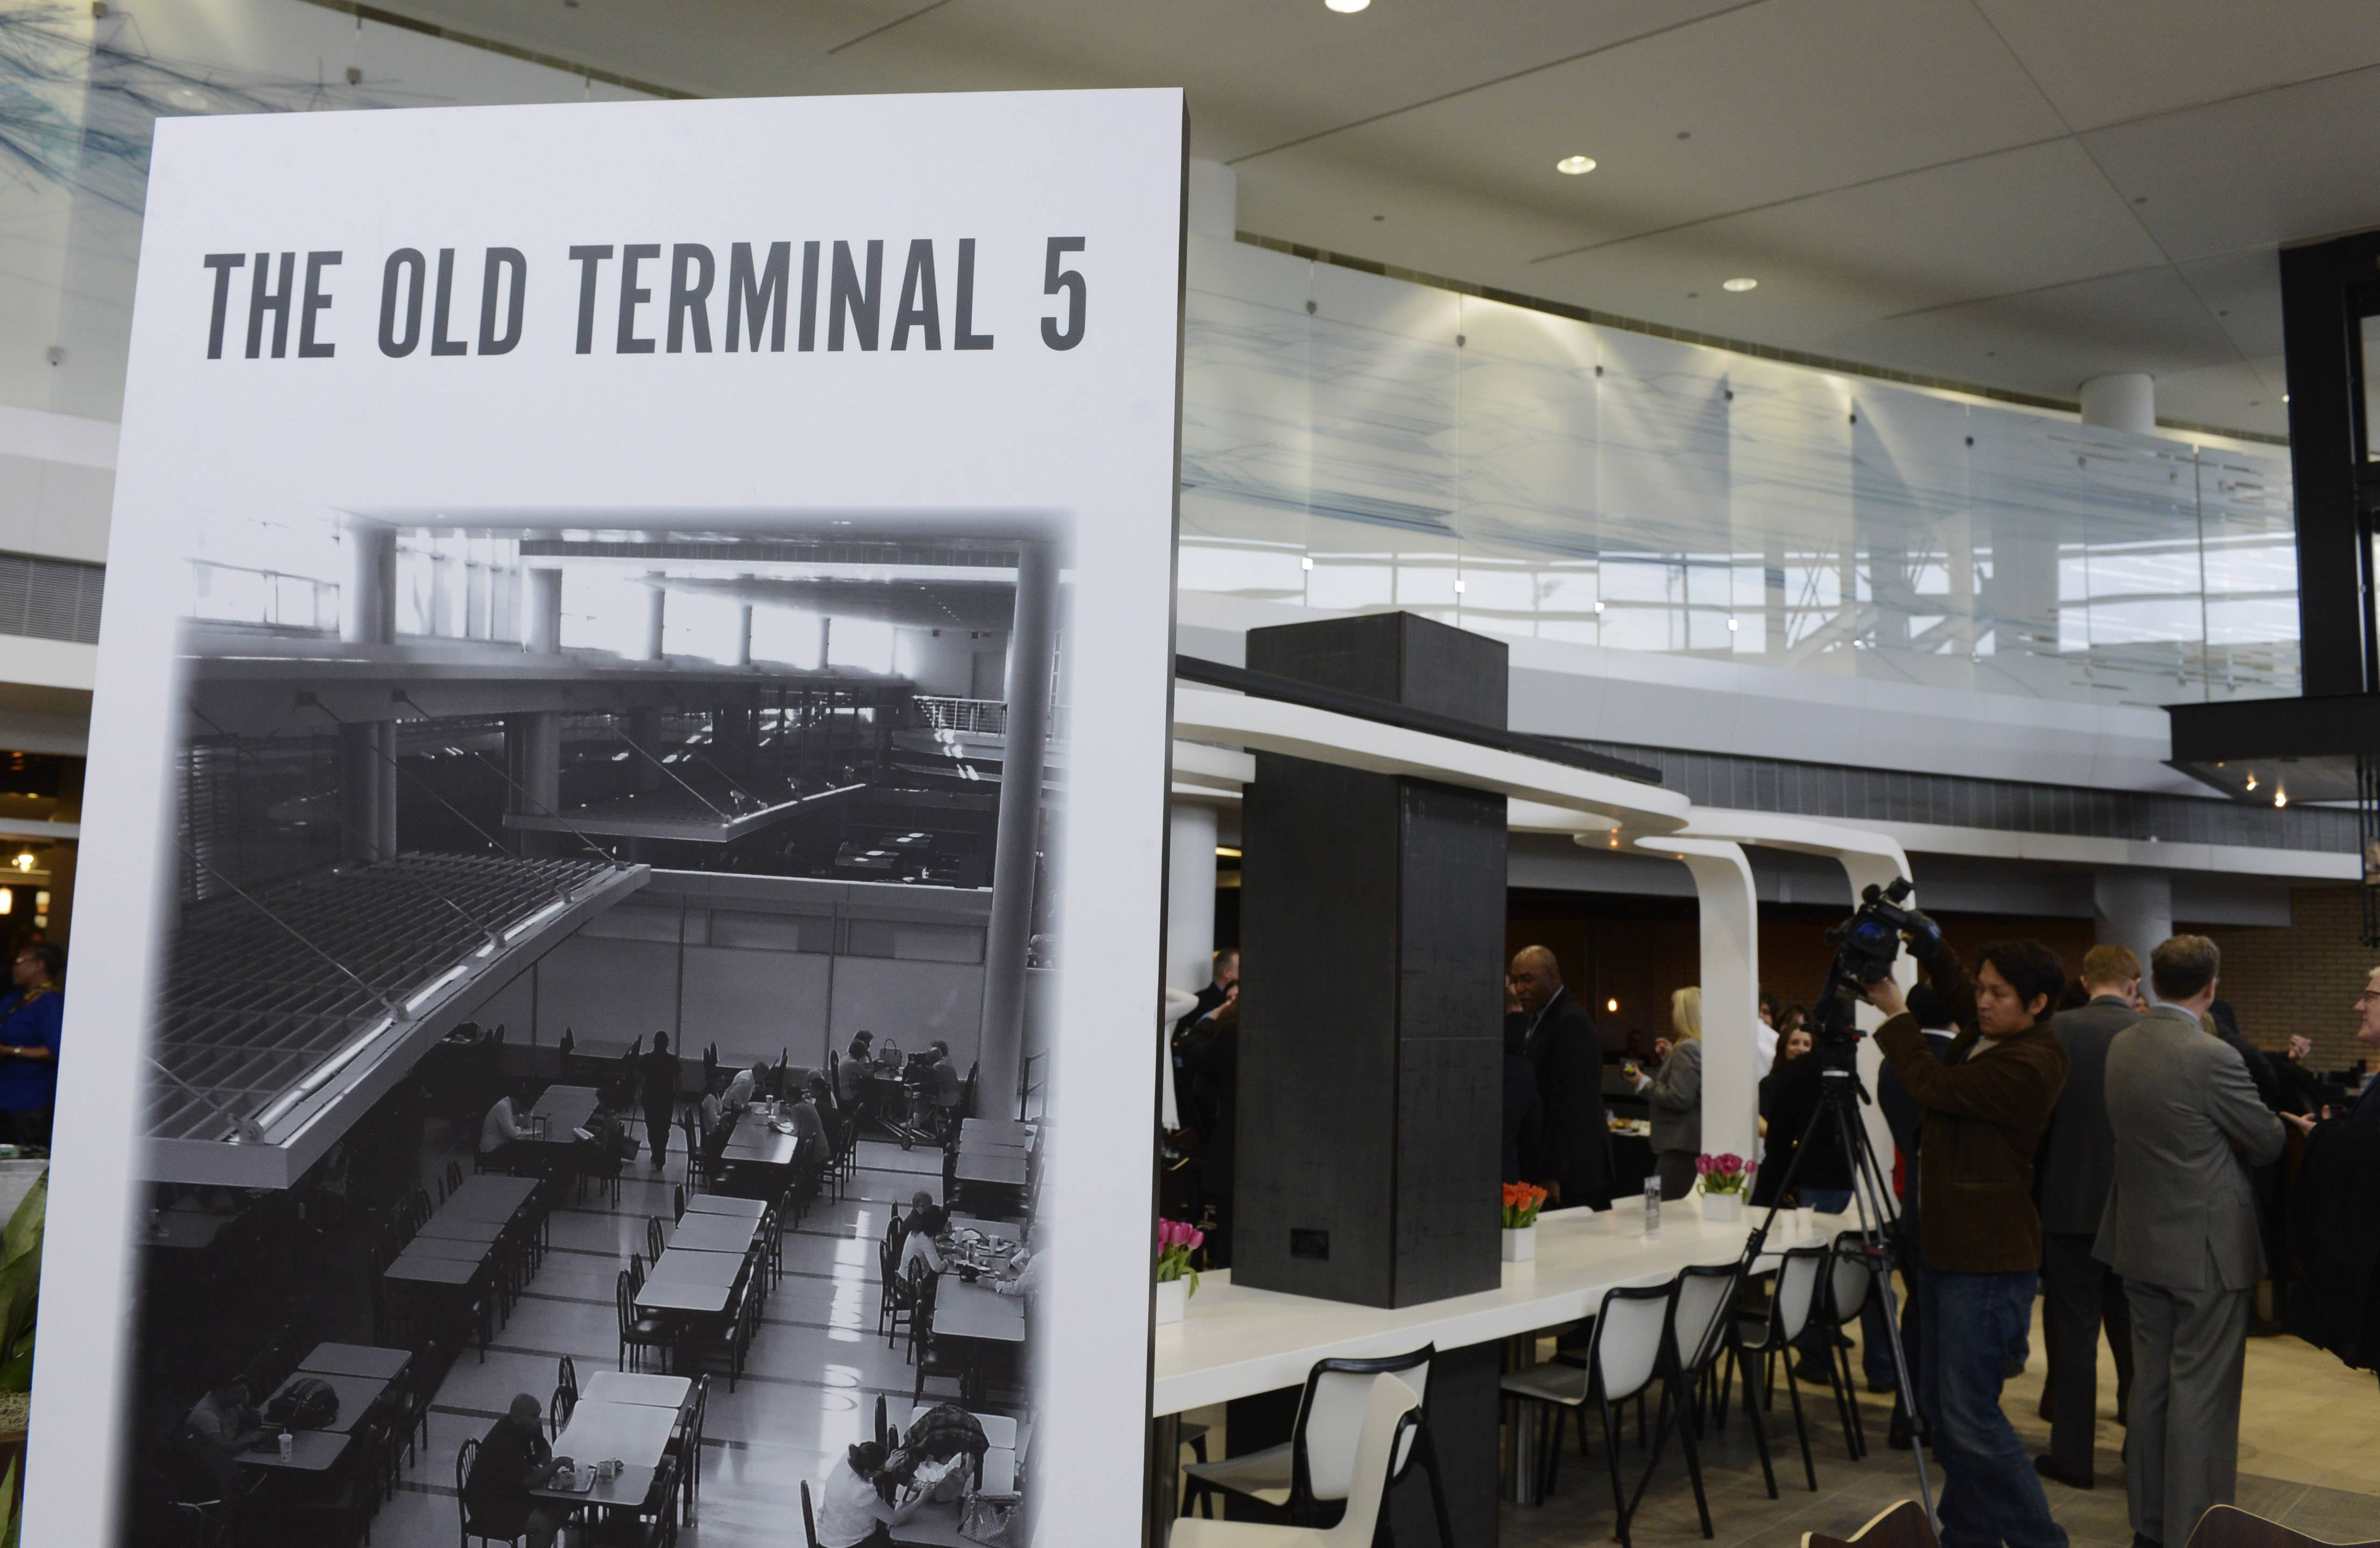 Posters provide a before-and-after view of the renovated International Terminal 5 at O'Hare International Airport unveiled Friday.